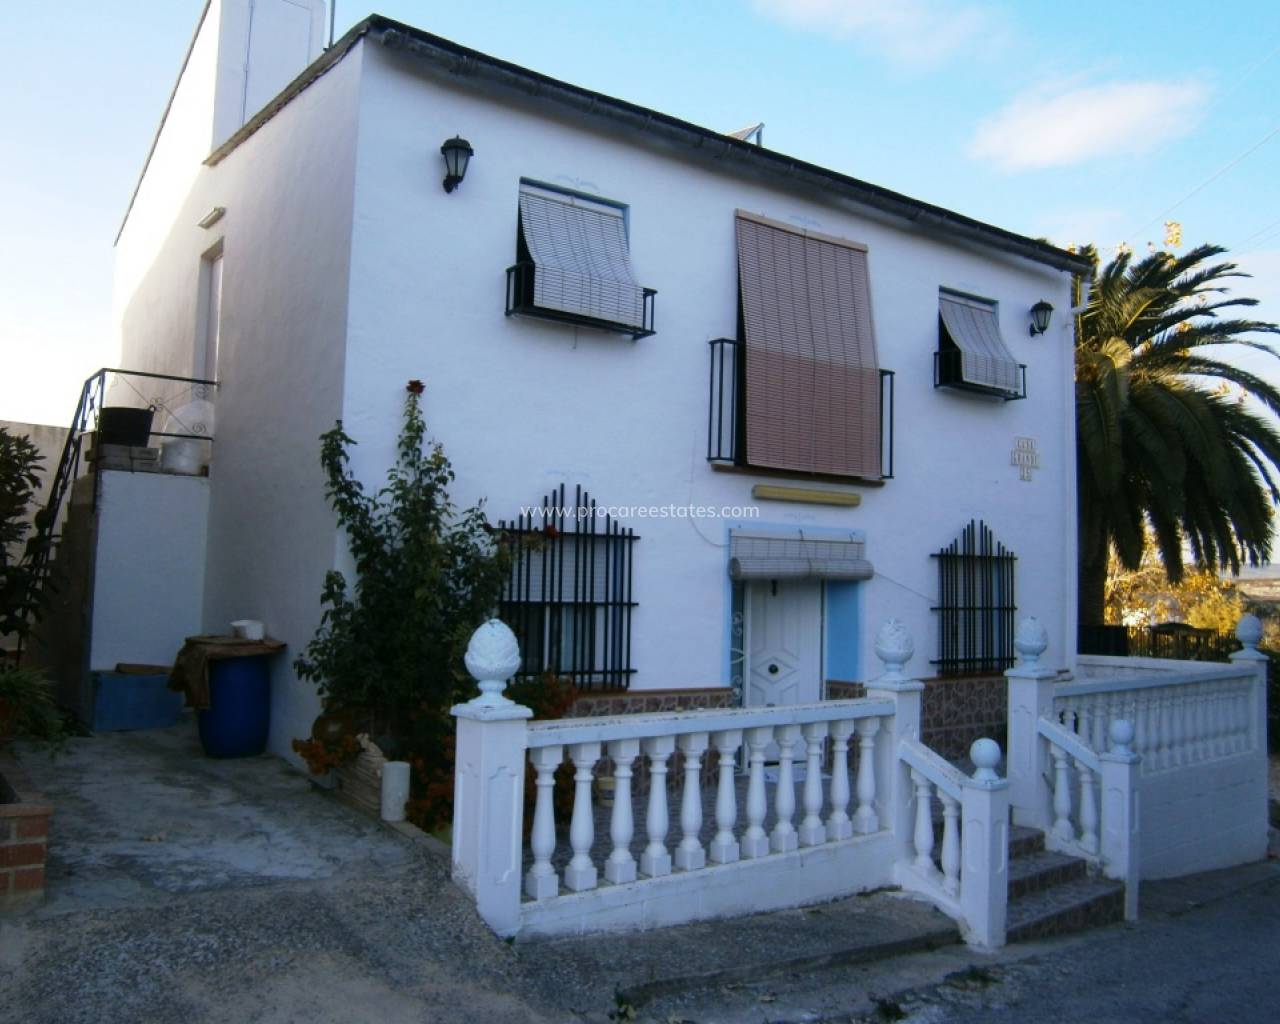 Country Property - Resale - Albaida - Albaida